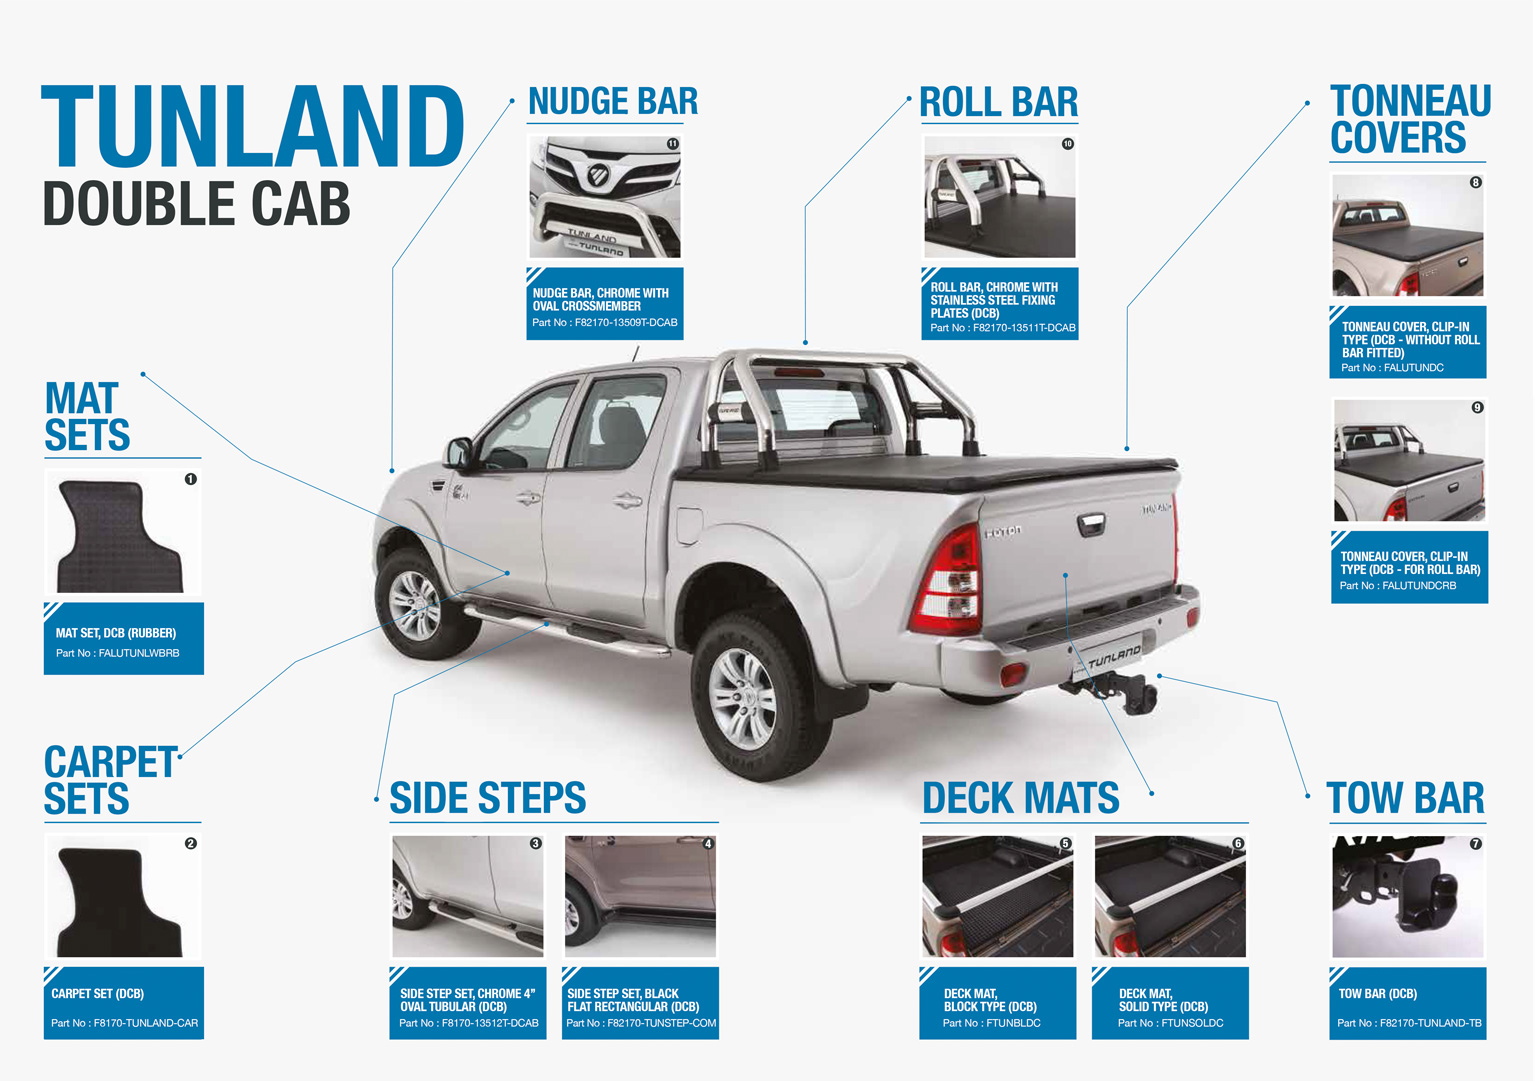 Tunland - Double Cab Accessories